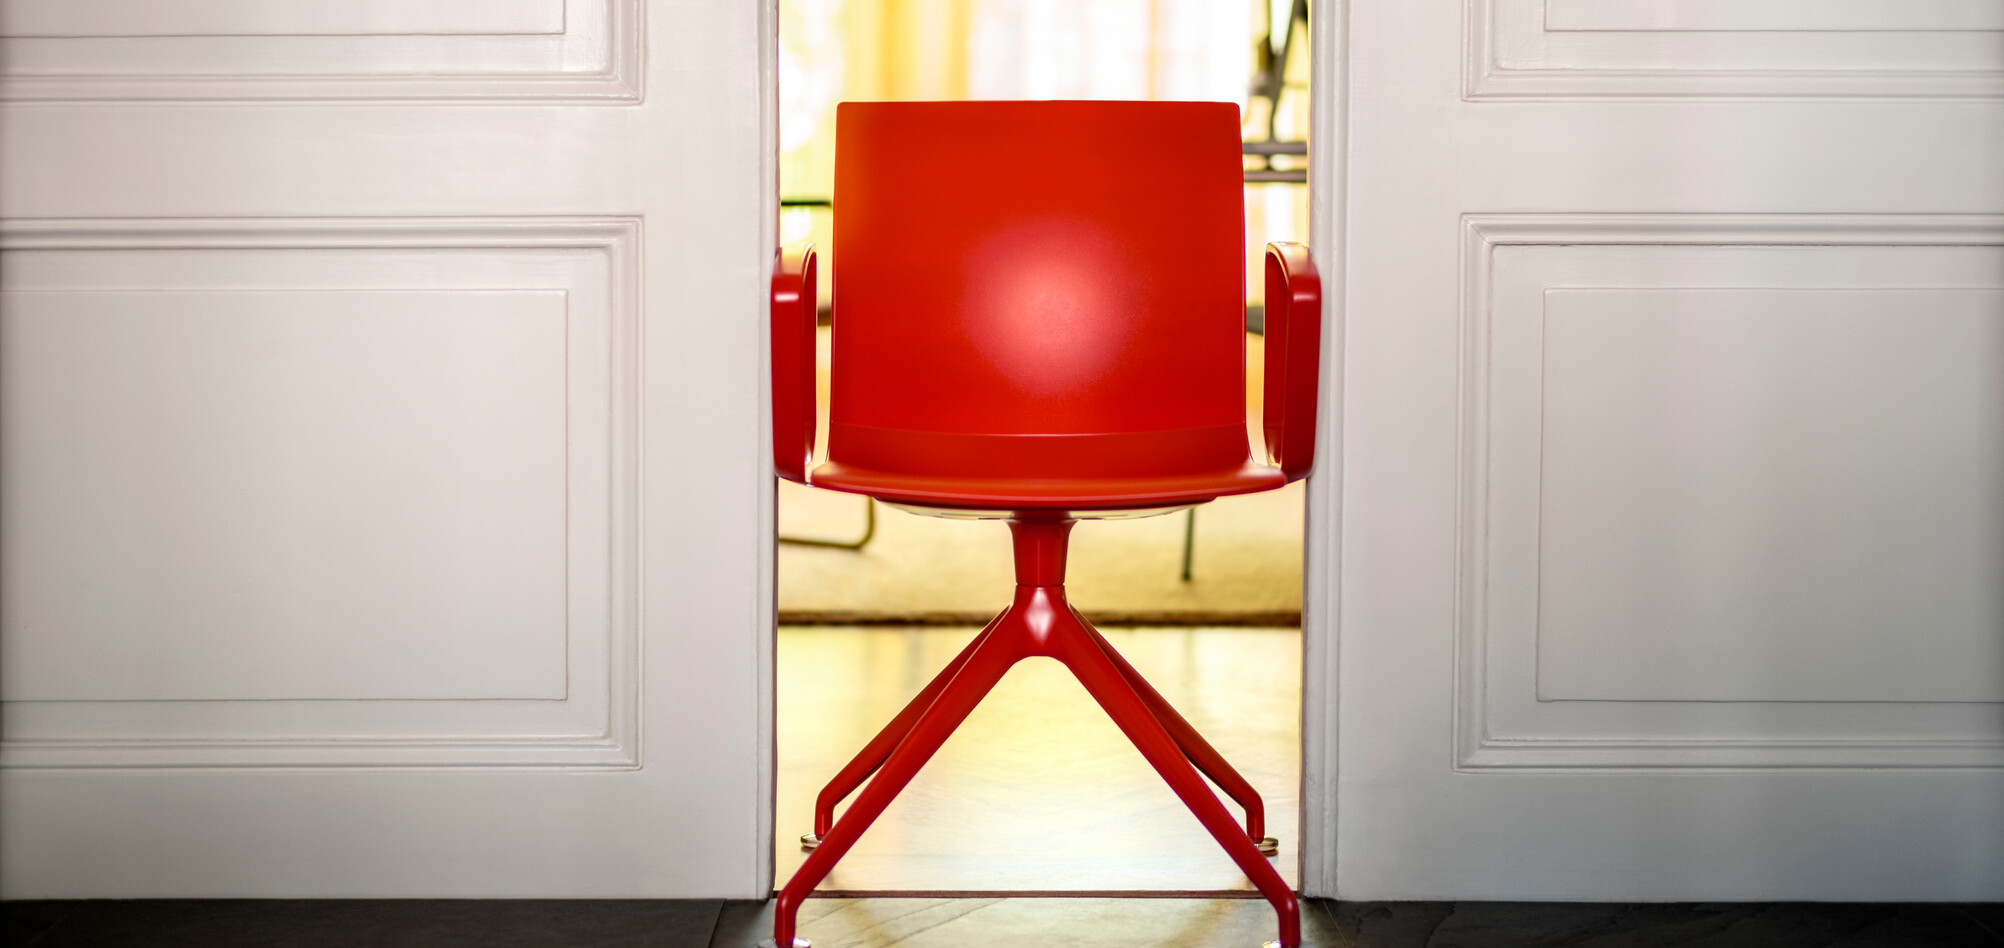 Royal Ahrend Well trestle base chair in red at Kvadrat store in Amsterdam L1000673